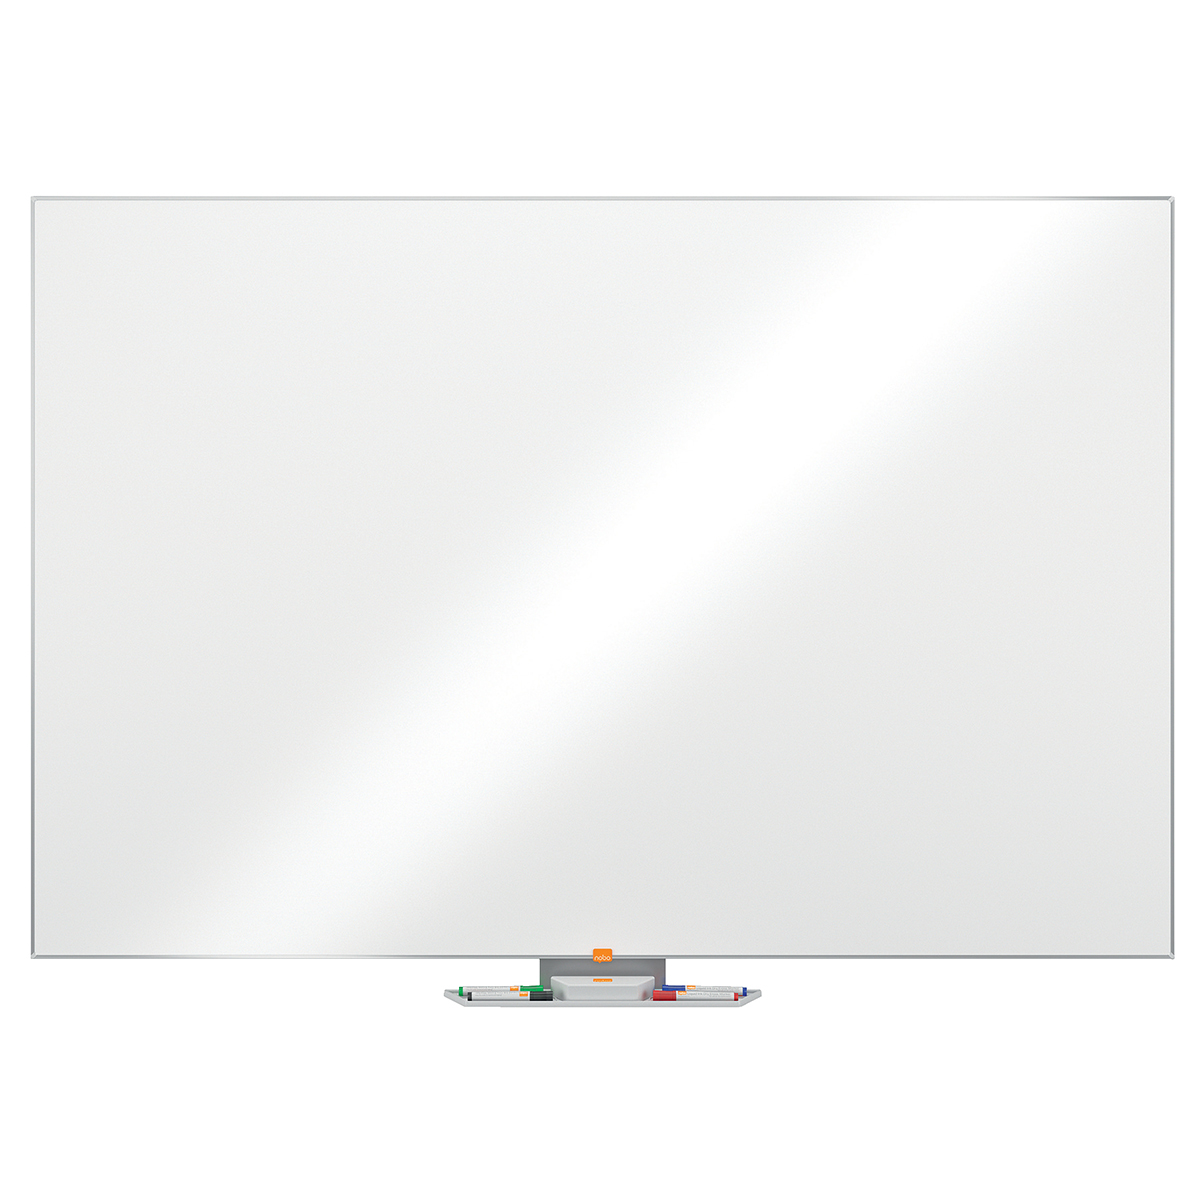 Nobo 1905224 Prestige Enamel Magnetic Whiteboard 1800 x 1200mm